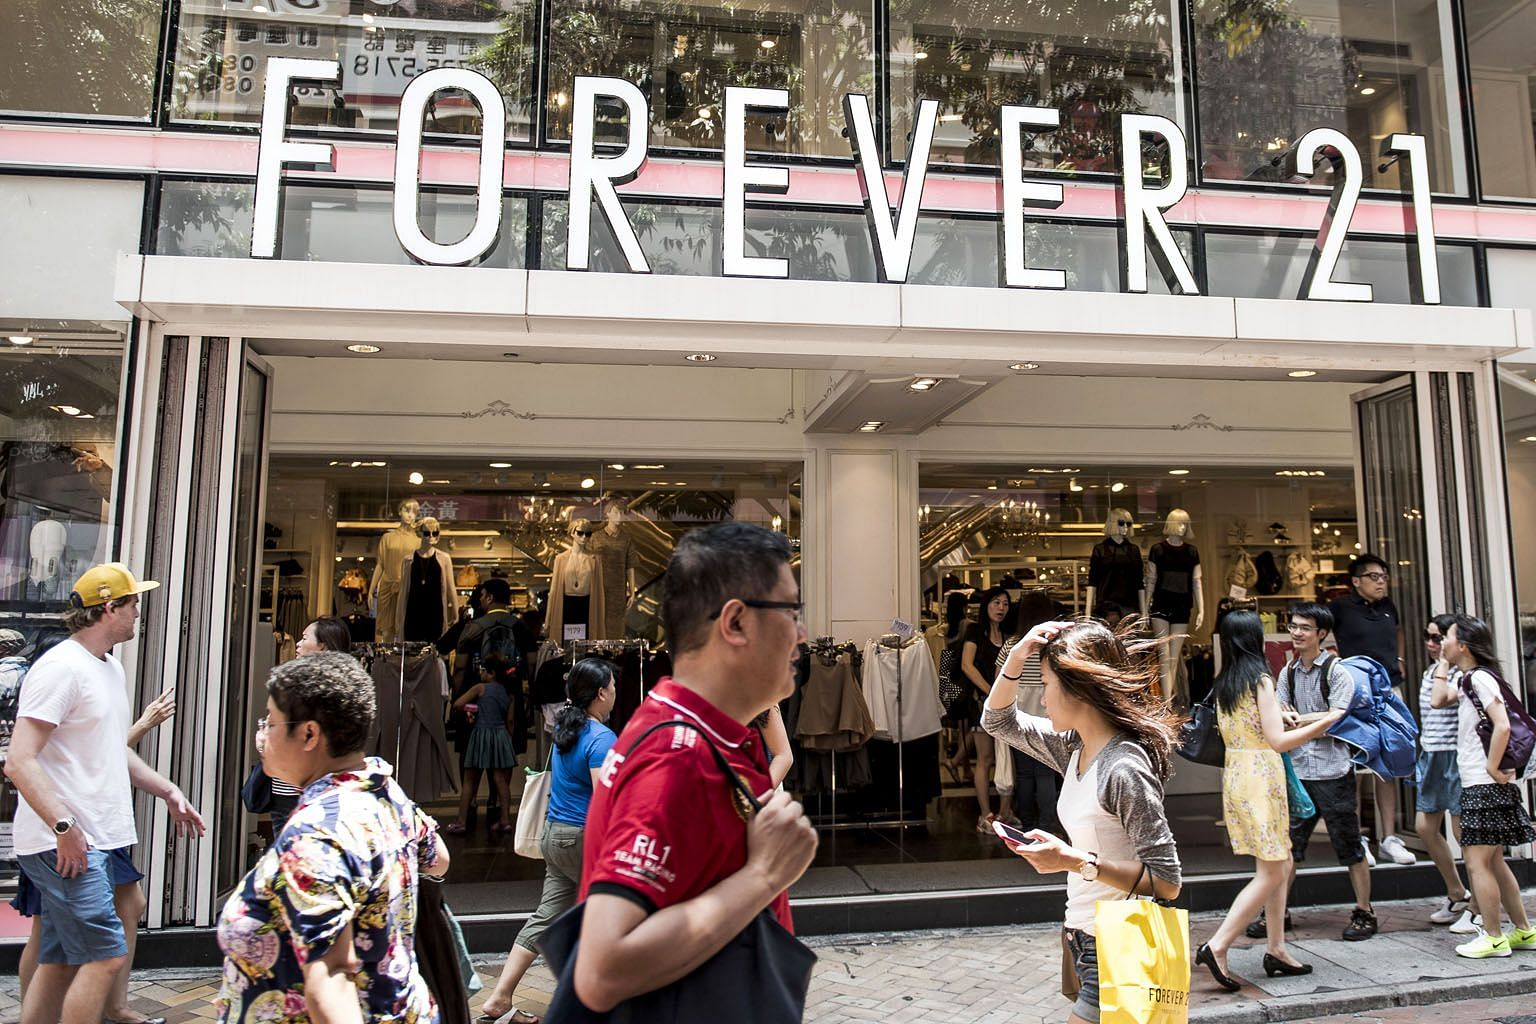 Fashion chain Forever 21 established itself as a destination for younger shoppers looking for trendy clothes at affordable prices. But competitors have crowded into that retail segment, from H&M to Target to new online sellers.